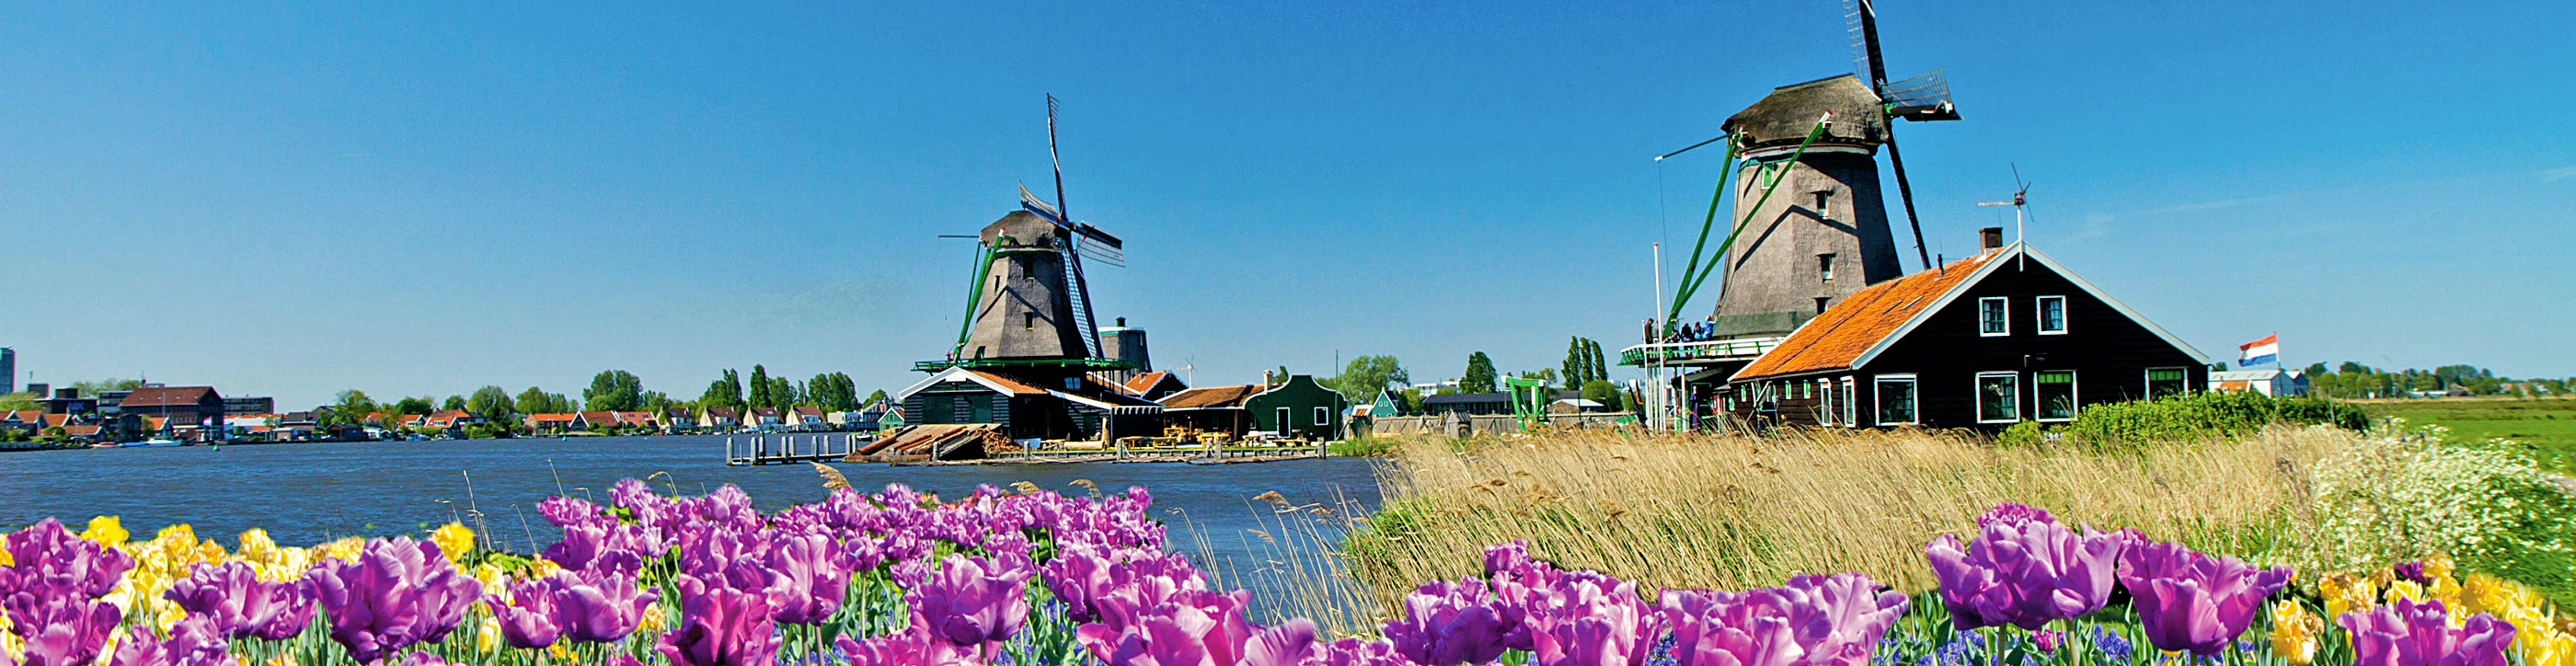 Tulips and Windmills